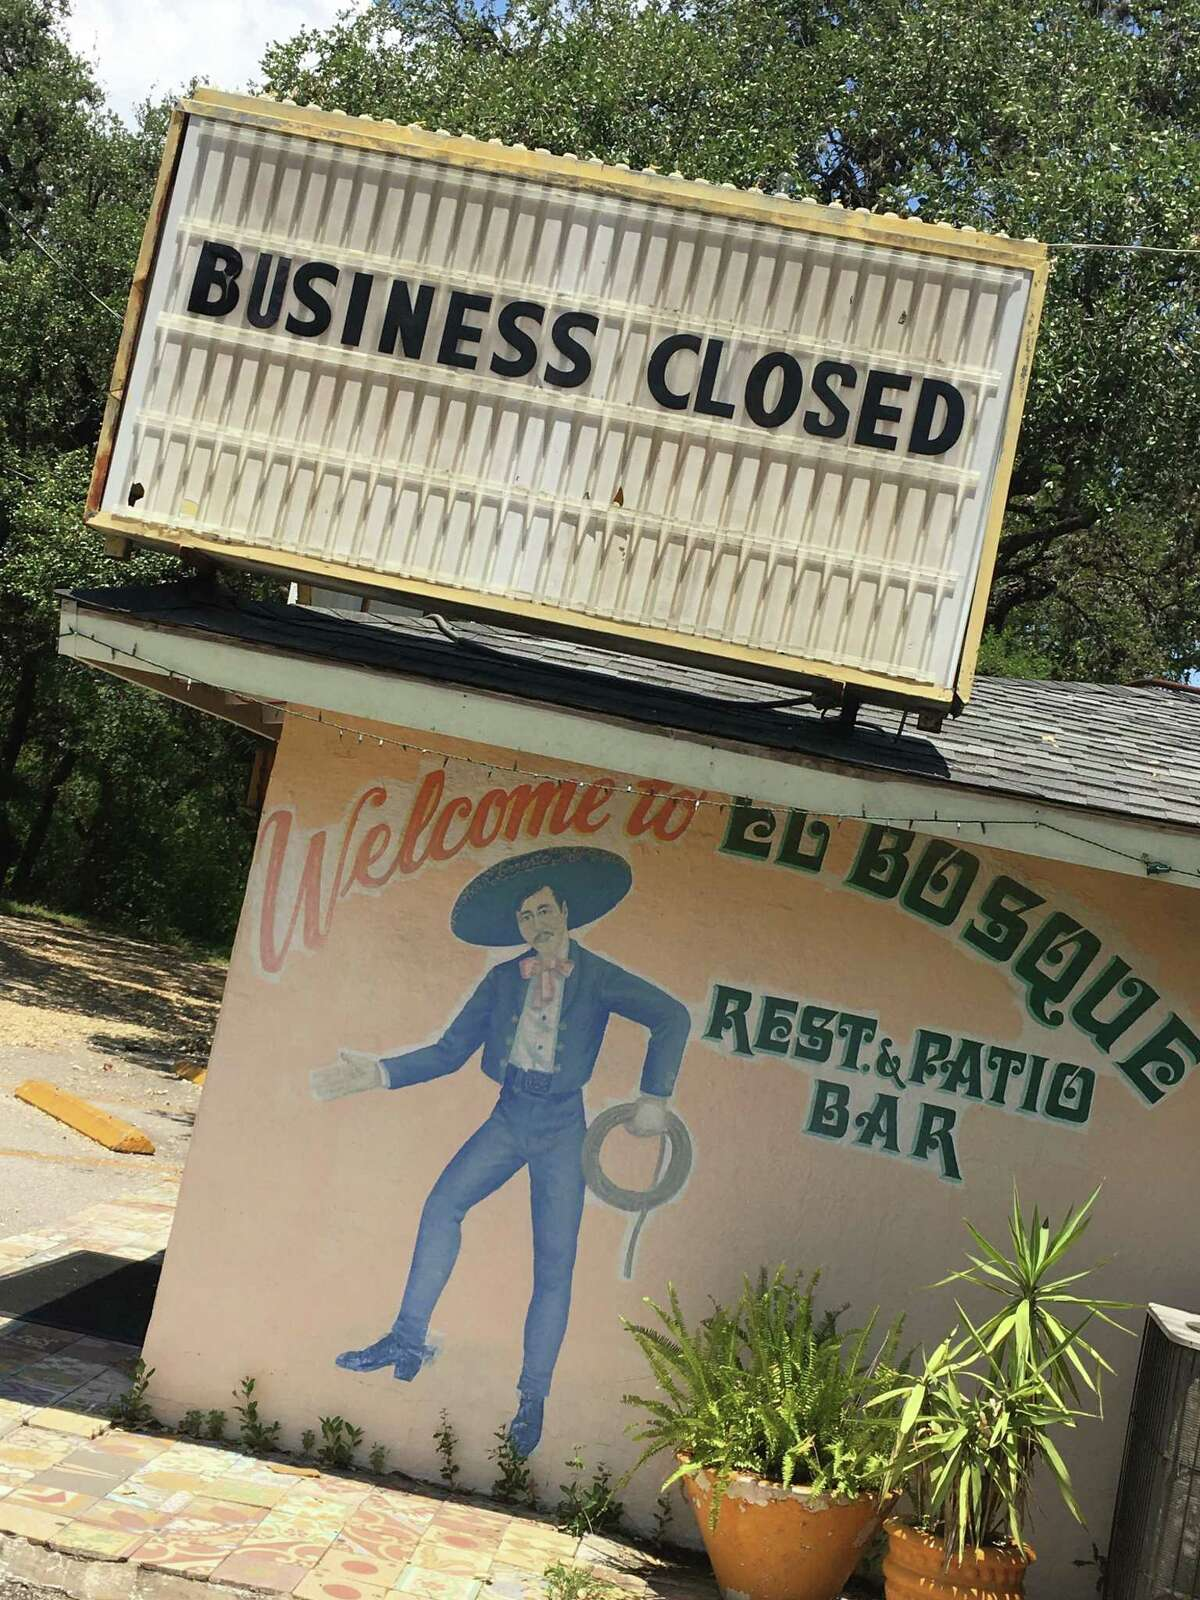 El Bosque Mexican Restaurant, located at 12656 West Ave., has announced that it has closed after almost 50 years in business.